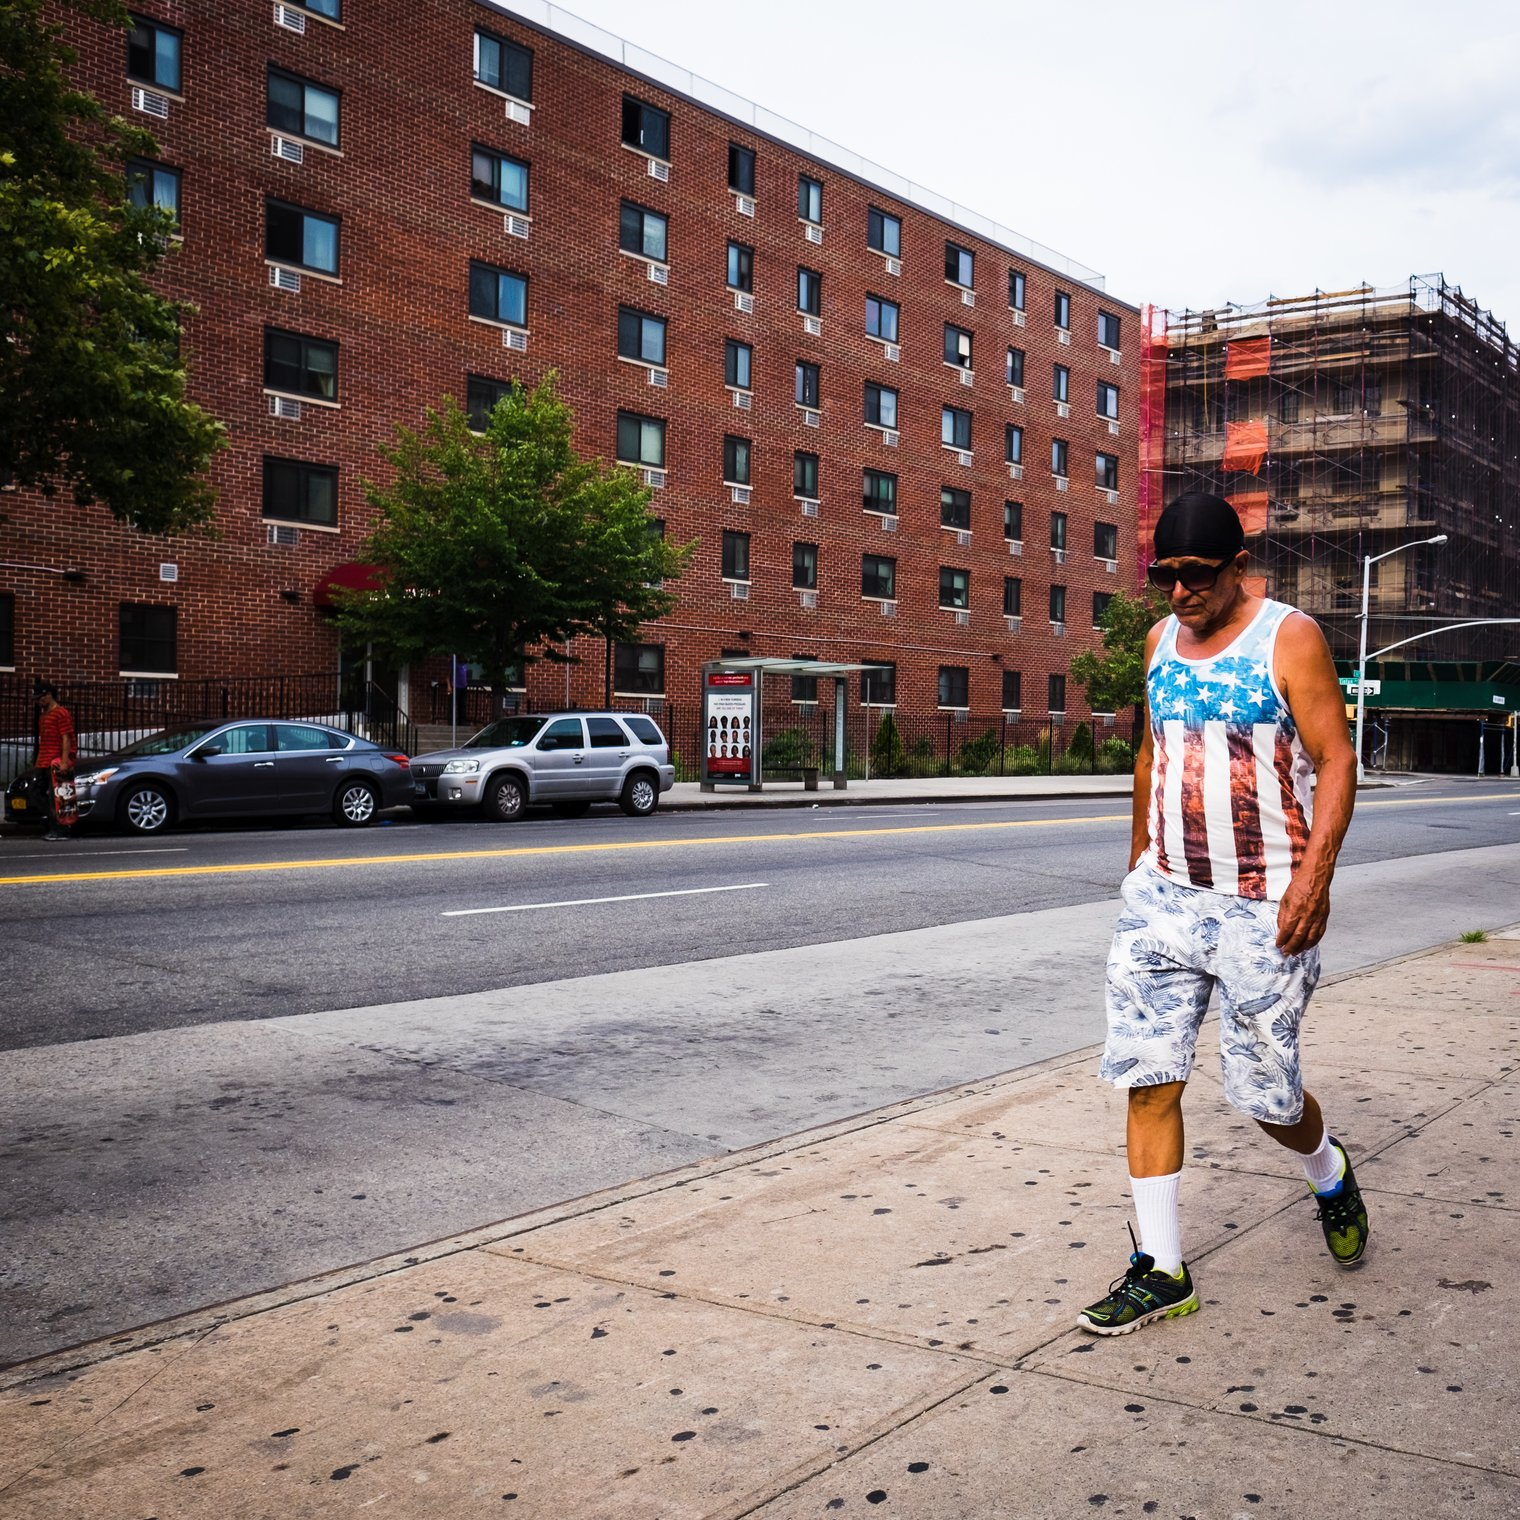 A man with an american flag shirt in the Bronx